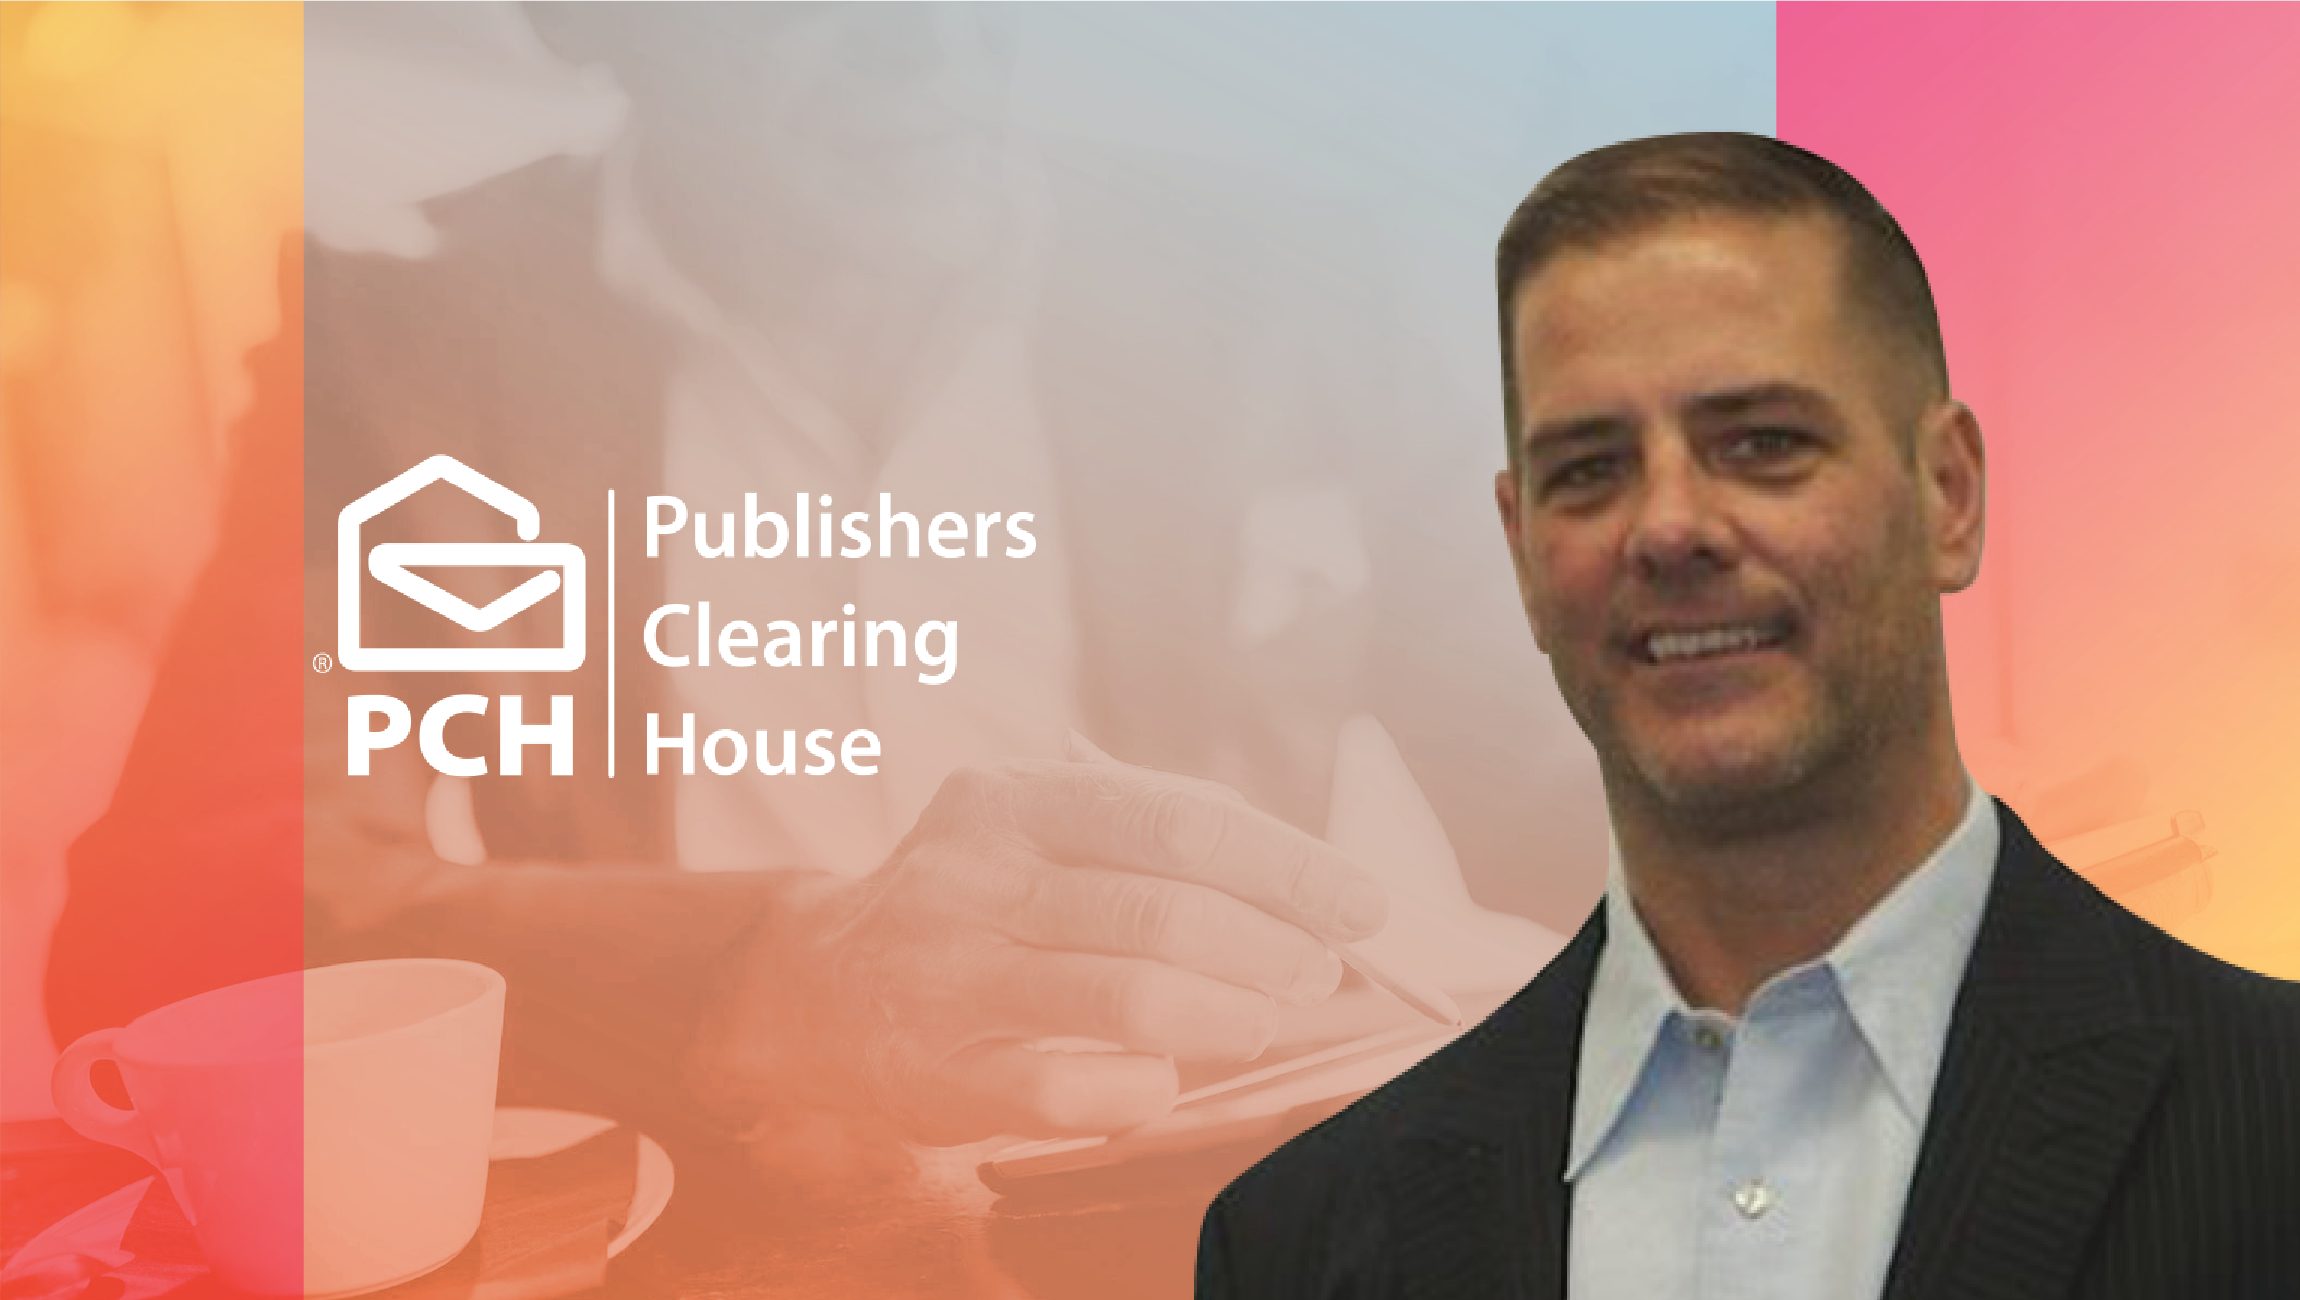 Interview with Mark Cullinane, SVP & GM Digital at Publishers